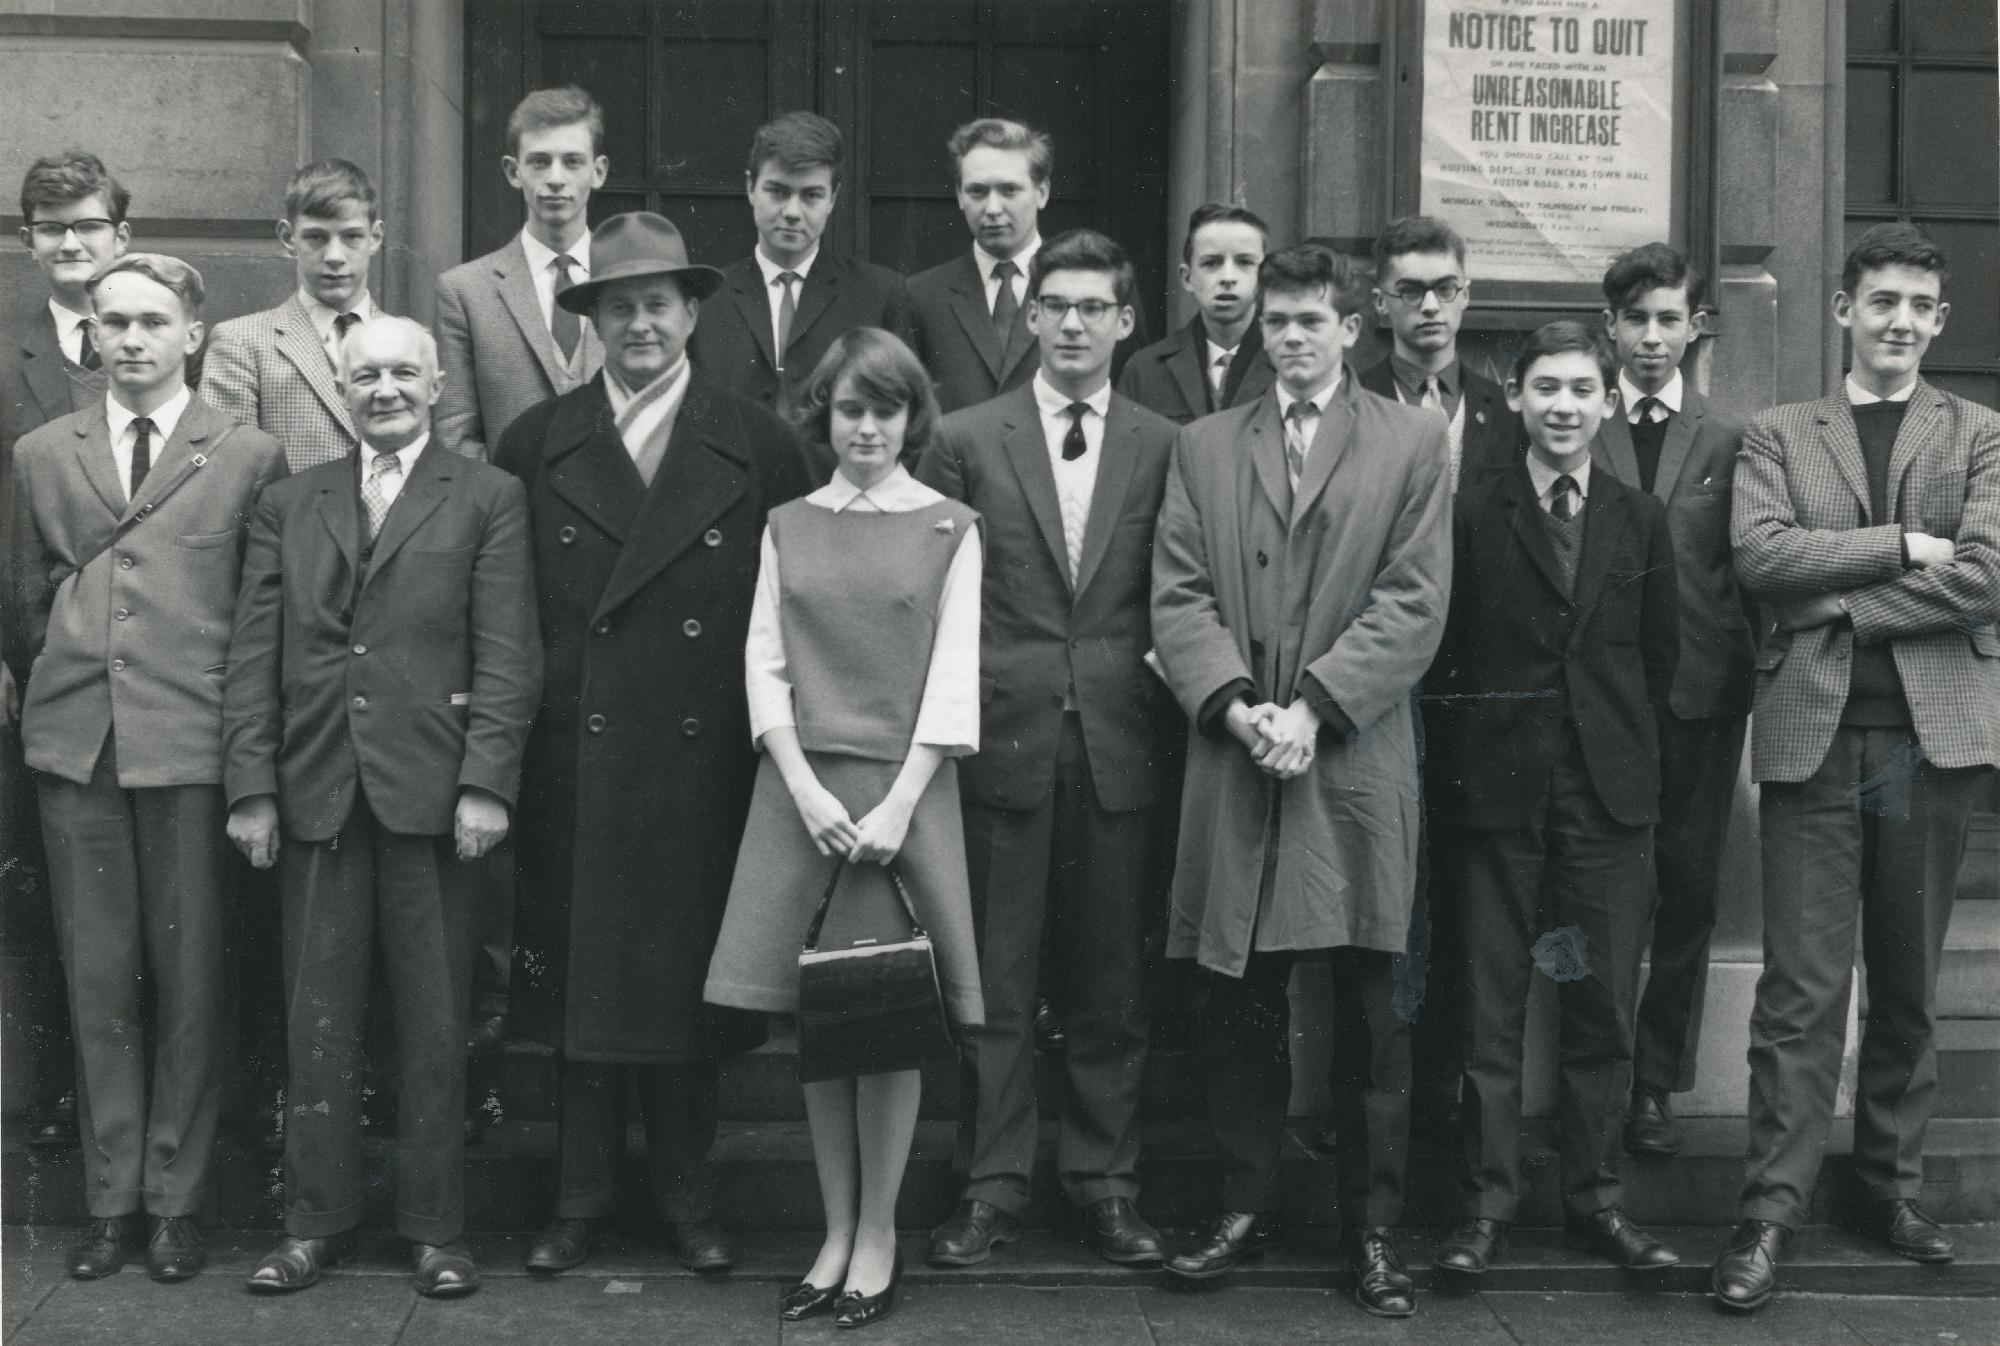 Some of the participants in the Paul Keres display on November 25th, 1962, at St Pancras Town Hall, London WC1. Back row : AJ. Whiteley, D, Floyer, PJ Collins, PJ Adams, RC Vaughan, KB Harman, D. Parr, DNL Levy, Front row : MV Lambshire, AE Hopkins (selector) Paul Keres, Miss D. Dobson, RE Hartley, BC Gillman, WR Hartston and PN Lee. Photograph by AM Reilly. Source : BCM, 1963, page 13